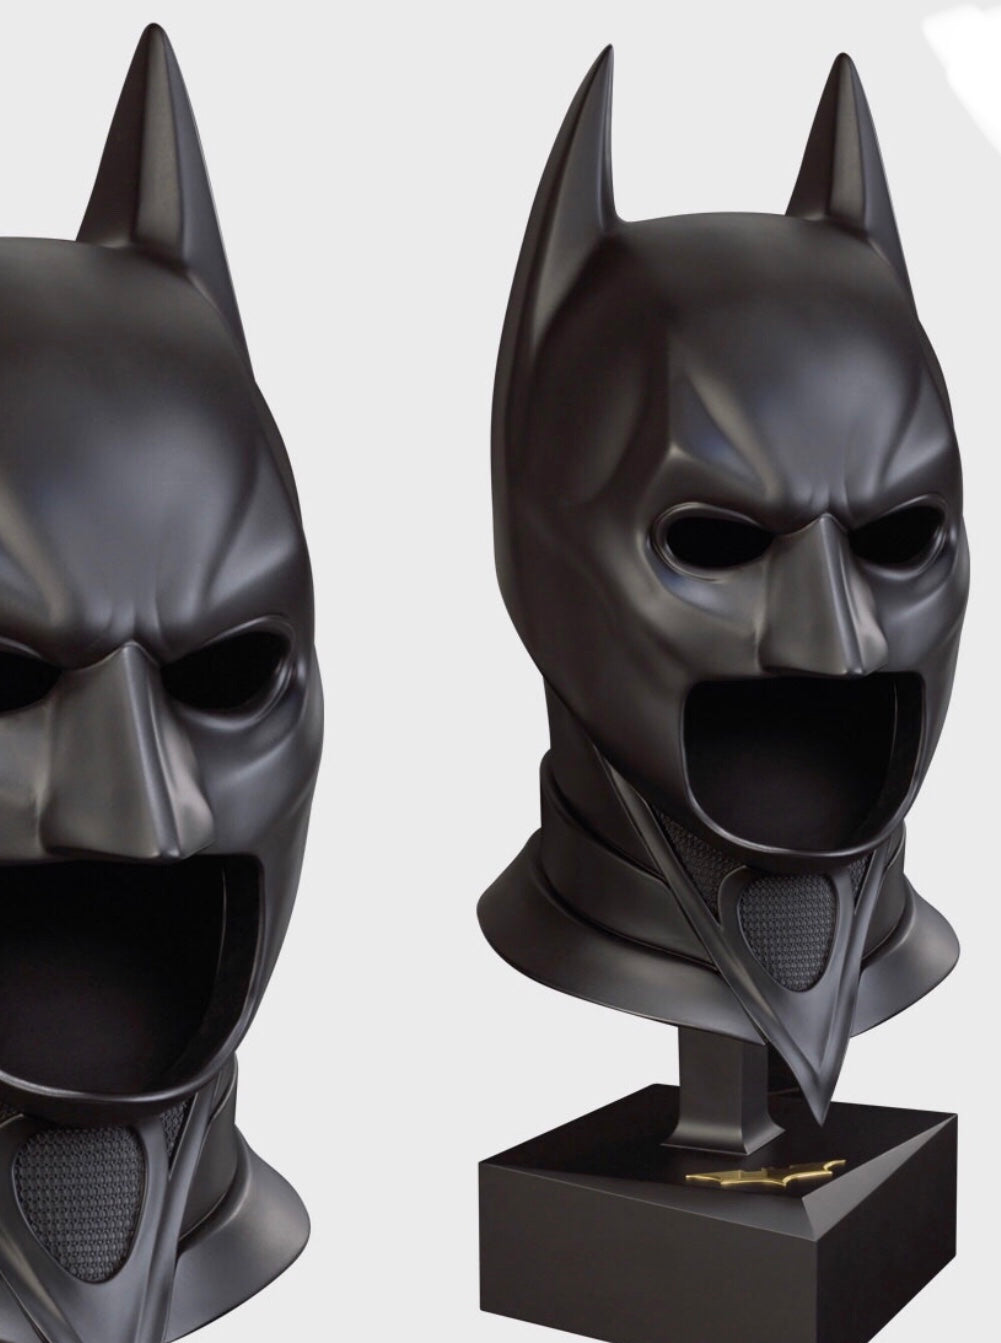 The Dark Knight (2008) - A Replica Bat Cowl based on the Original Studio Moulds